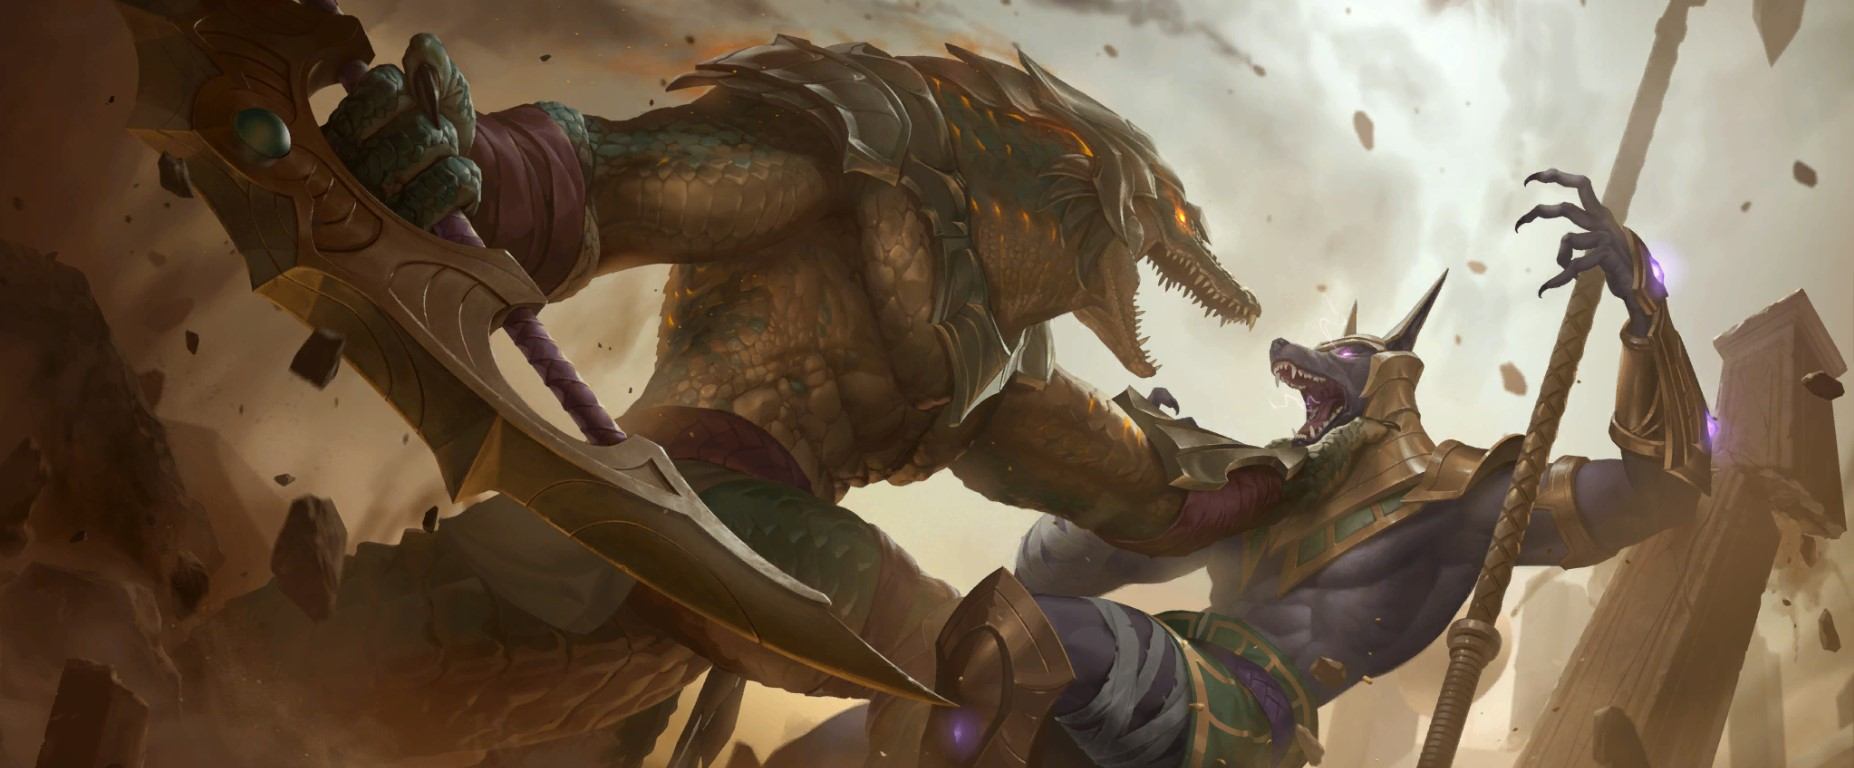 Empires of the Ascended LoR Card Impressions: Renekton (Quicksand, Exhaust, and More)